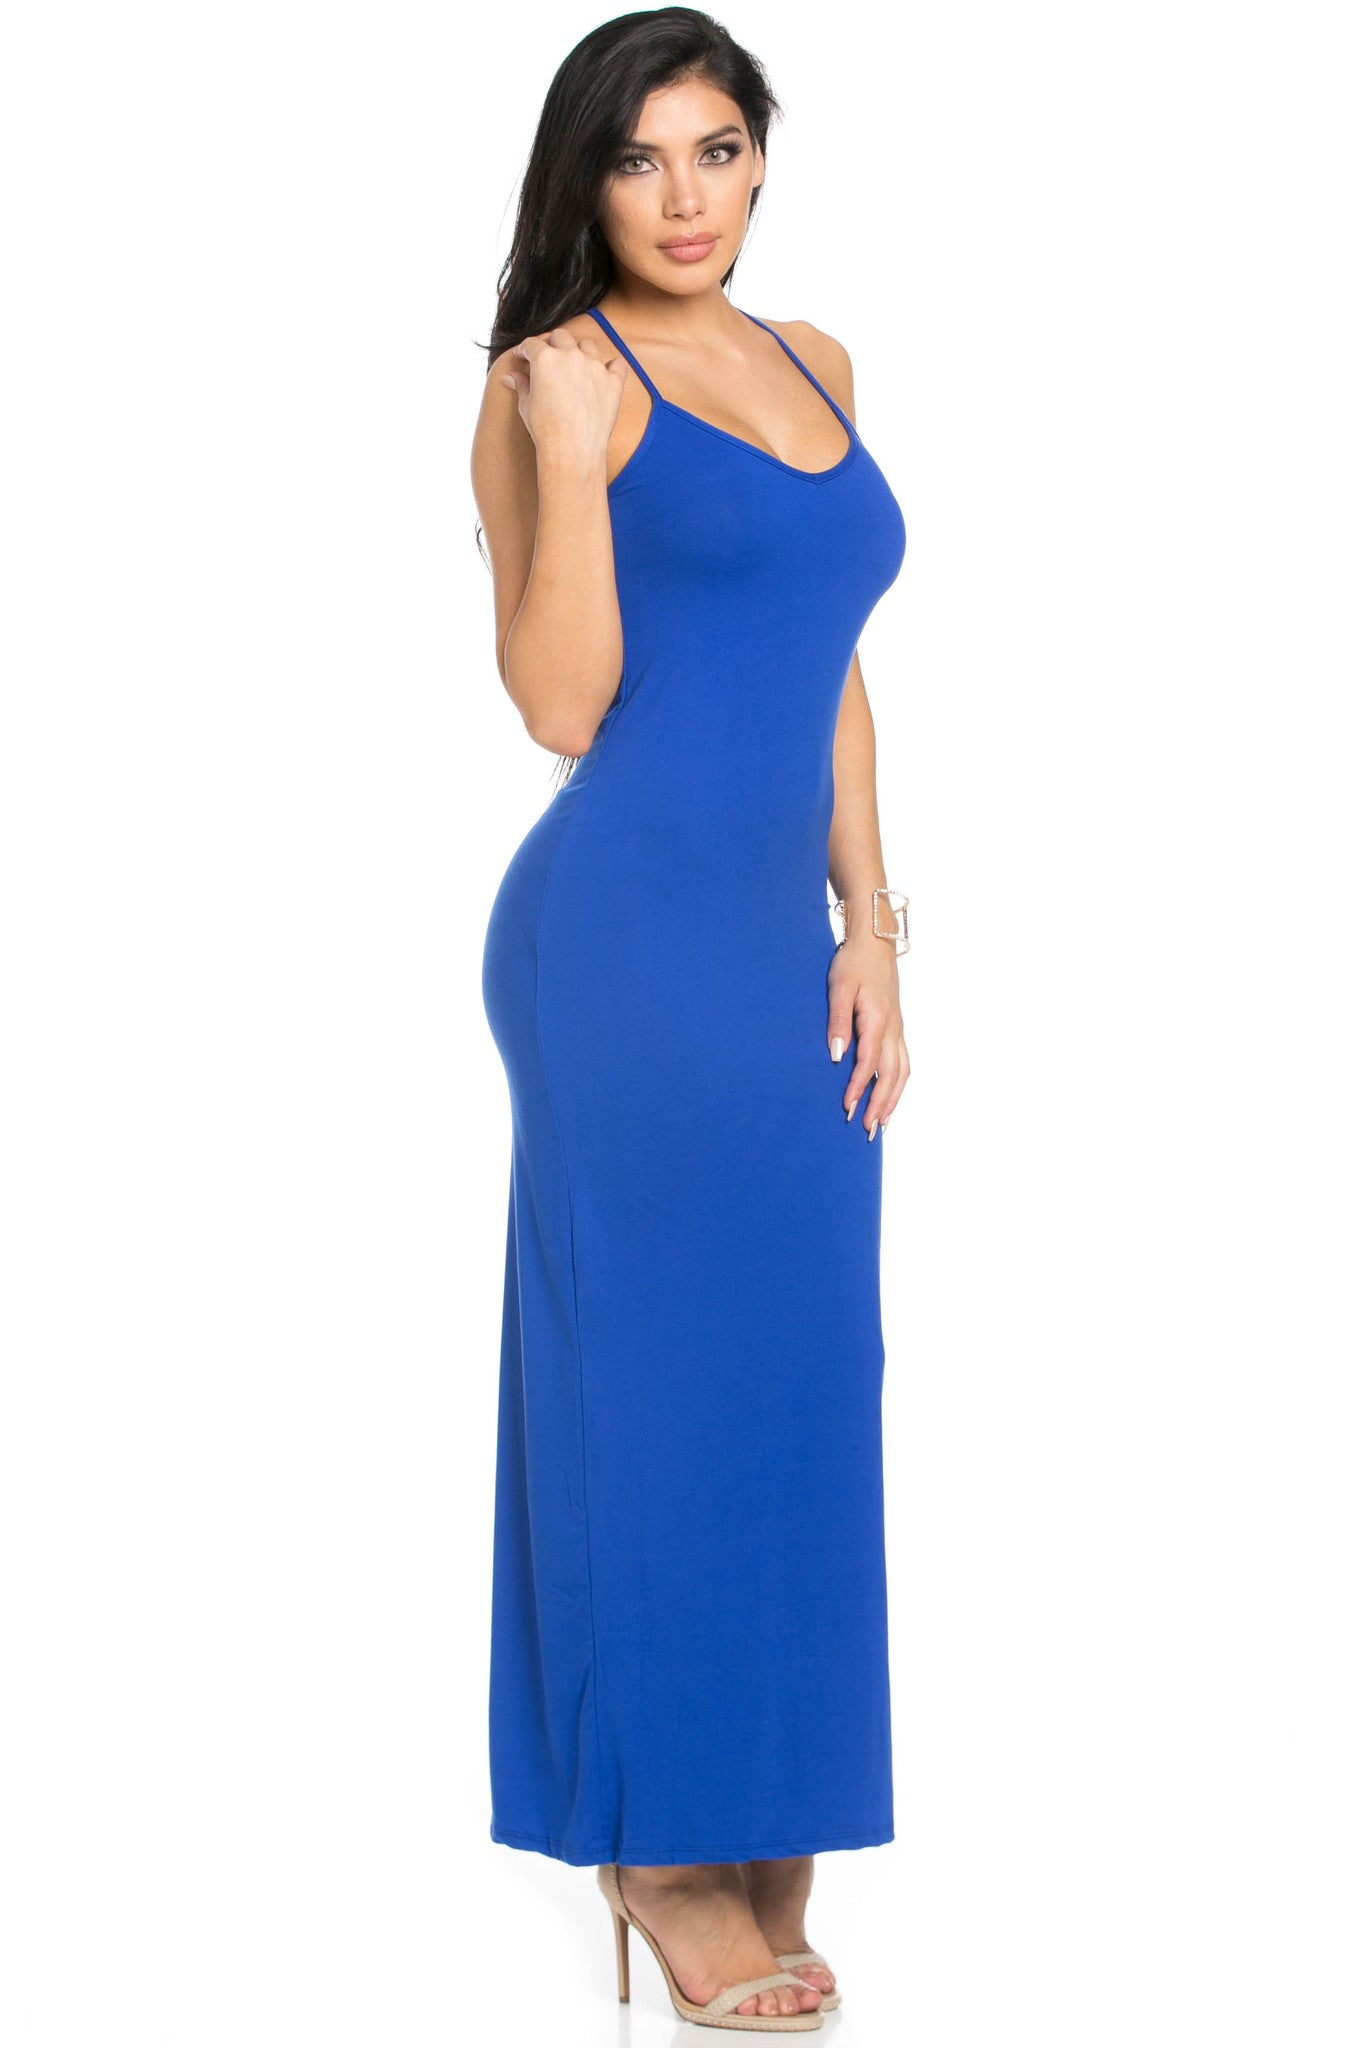 Micro Suede Royal Blue Maxi Dress - Dresses - My Yuccie - 5